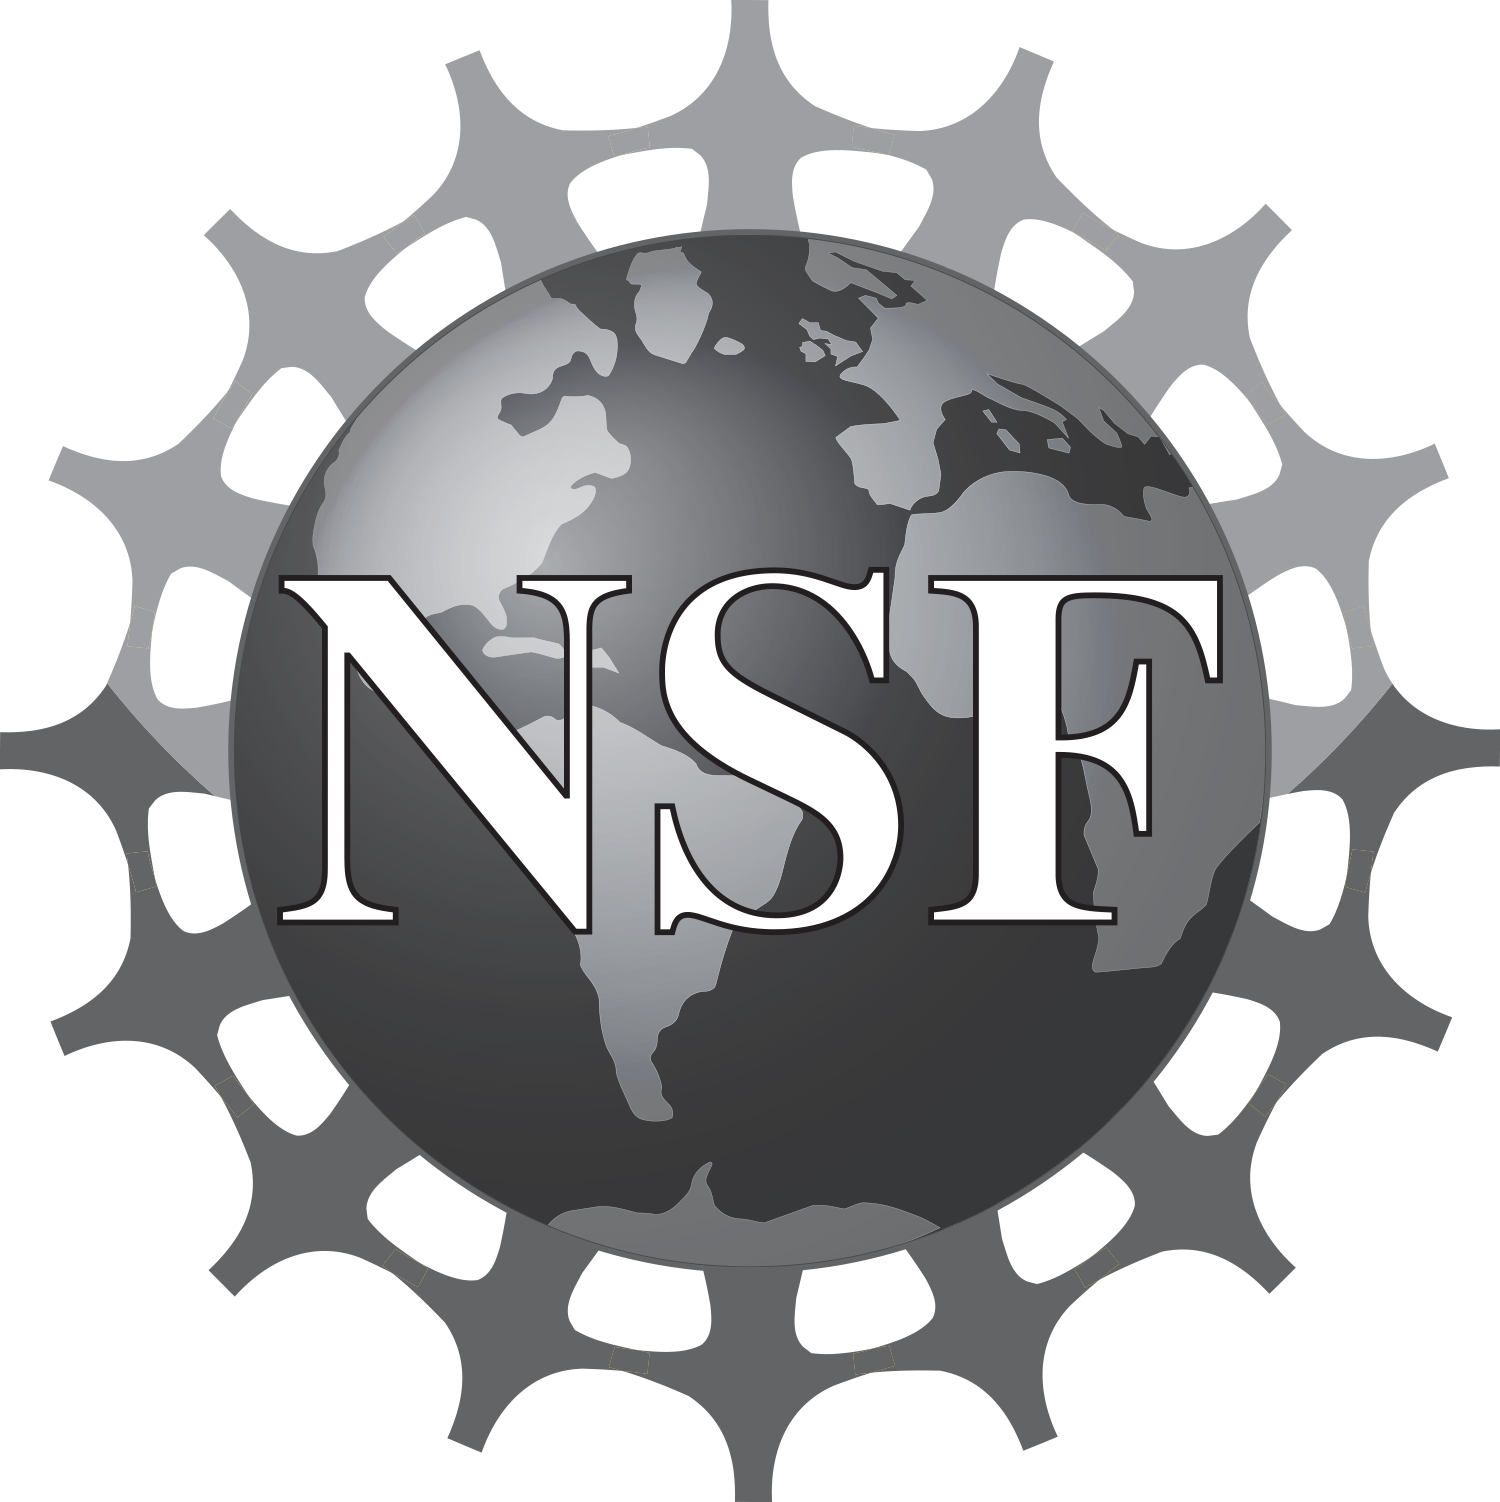 National science foundation logo png. Nsf greyscale bitmap